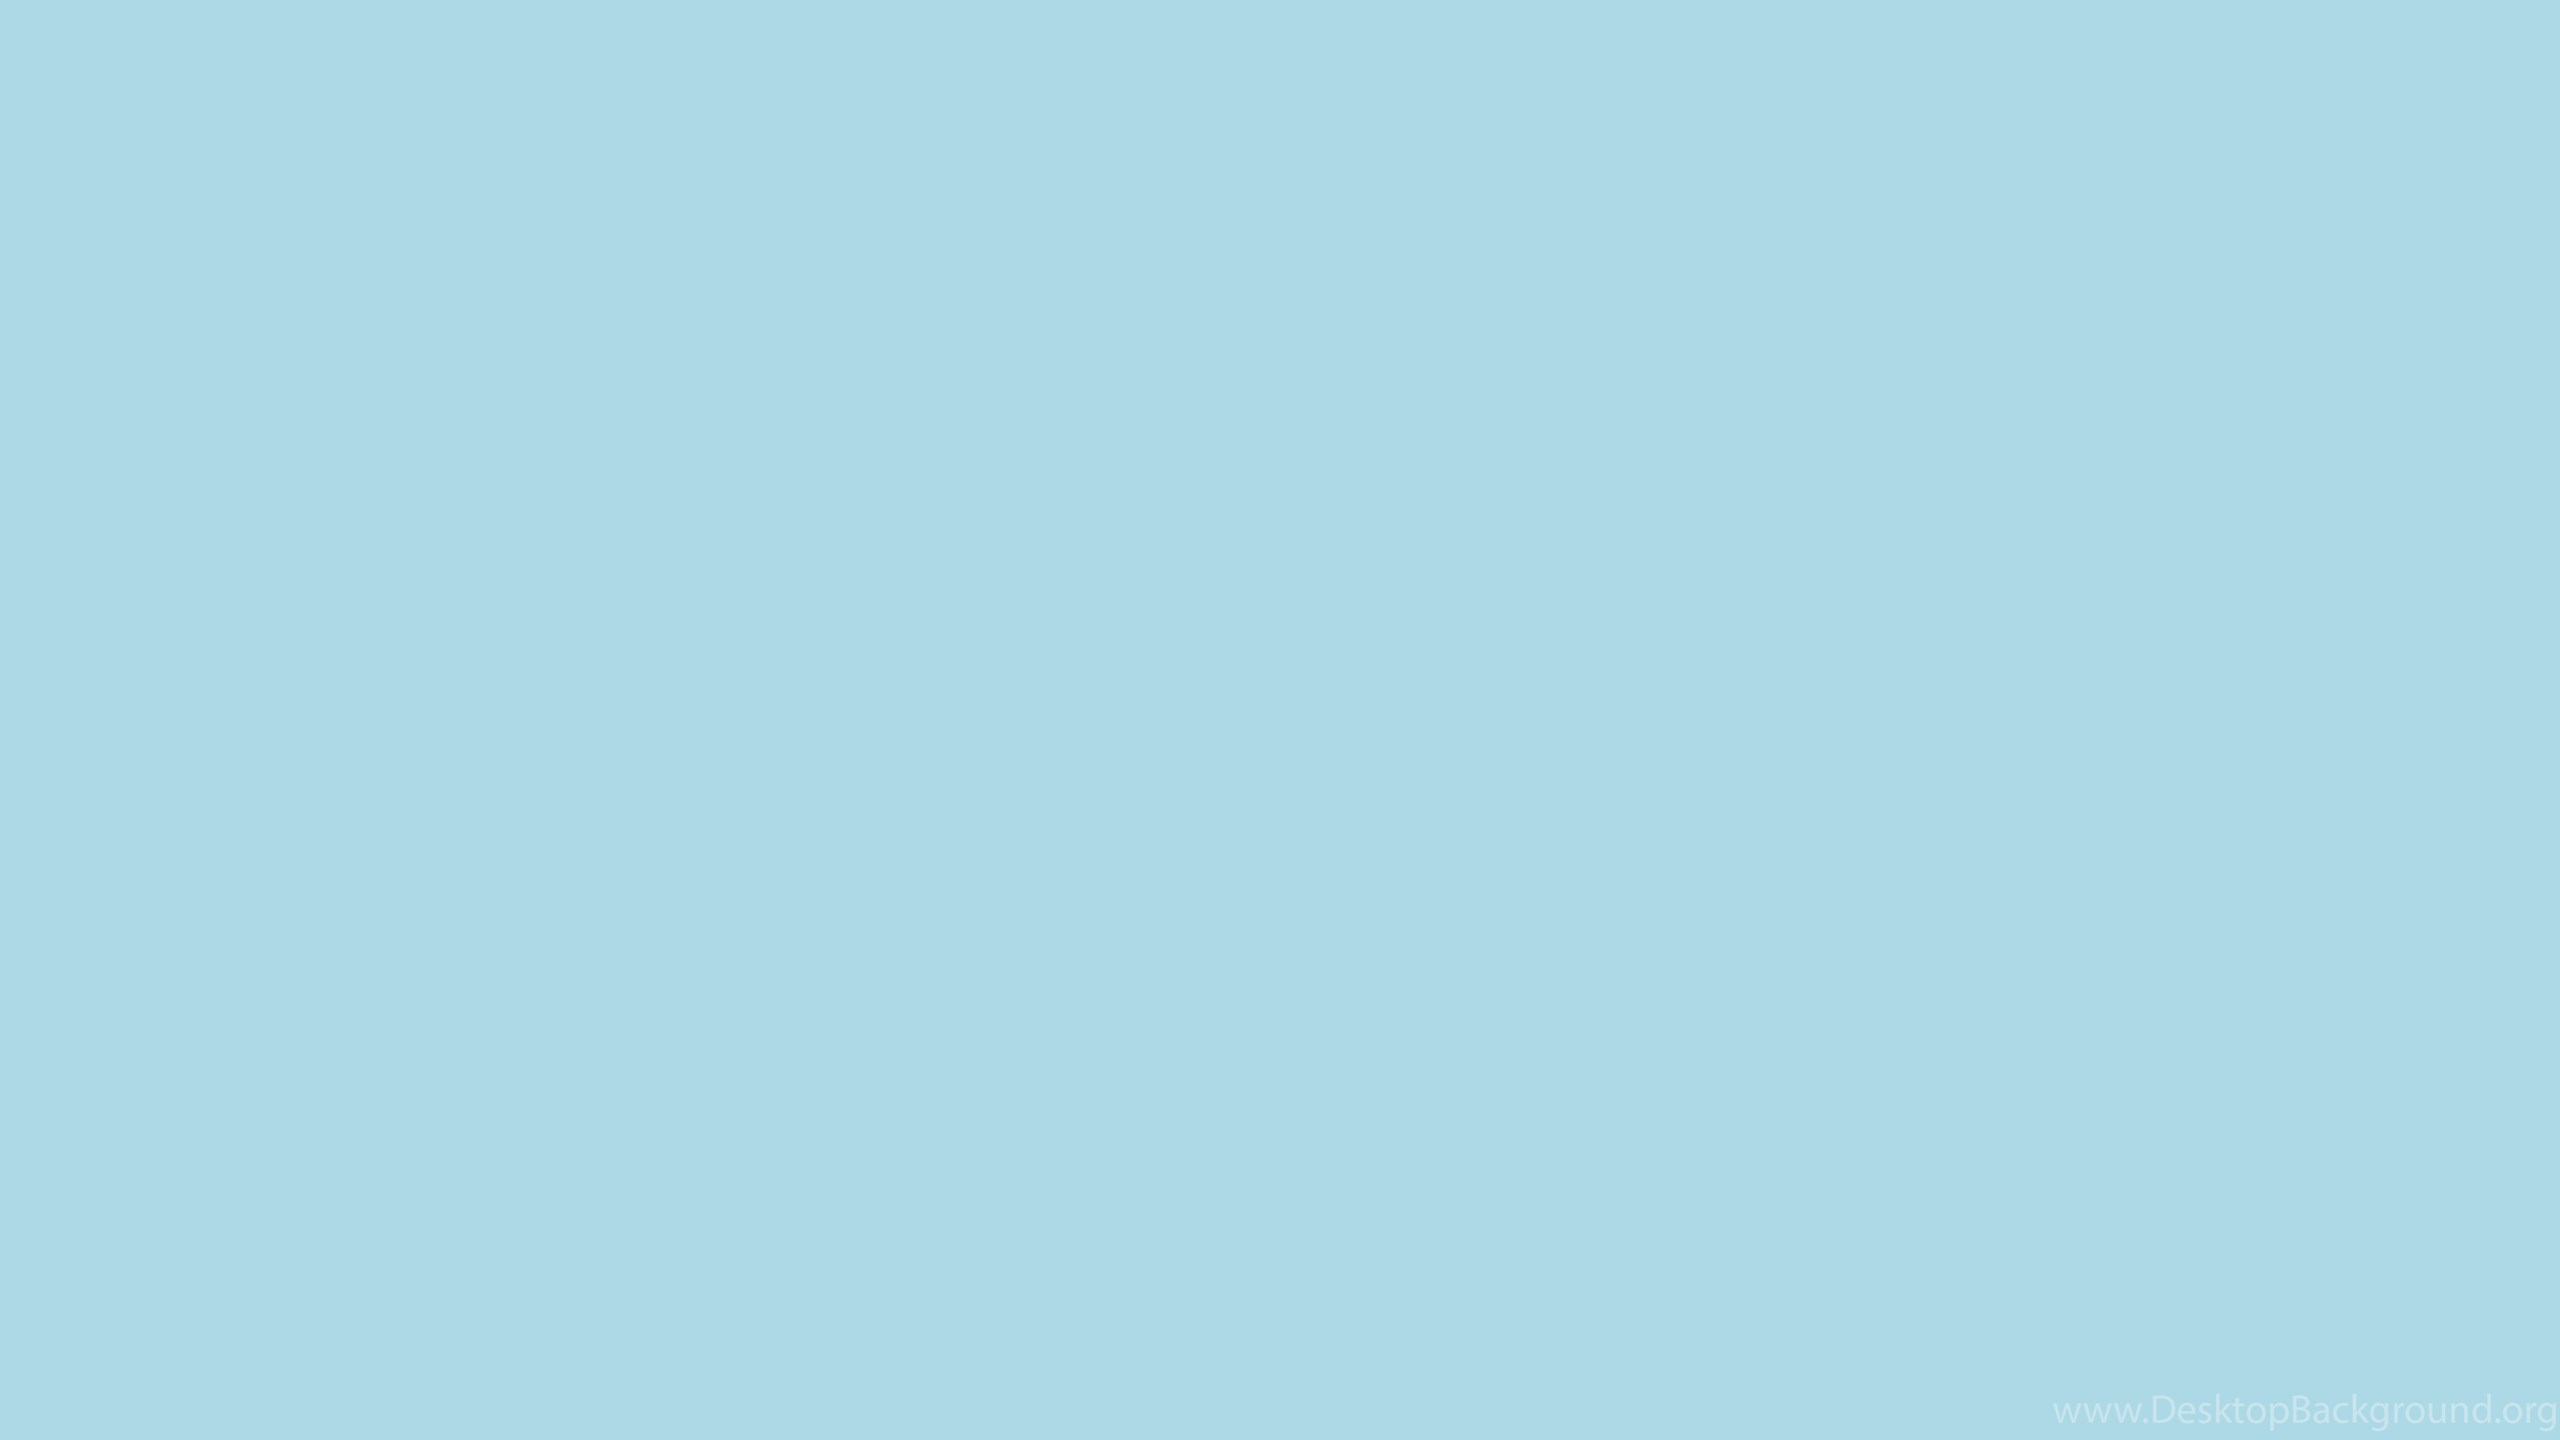 Light Blue Solid Color Wallpapers 2114 2560 X 1600 WallpaperLayer